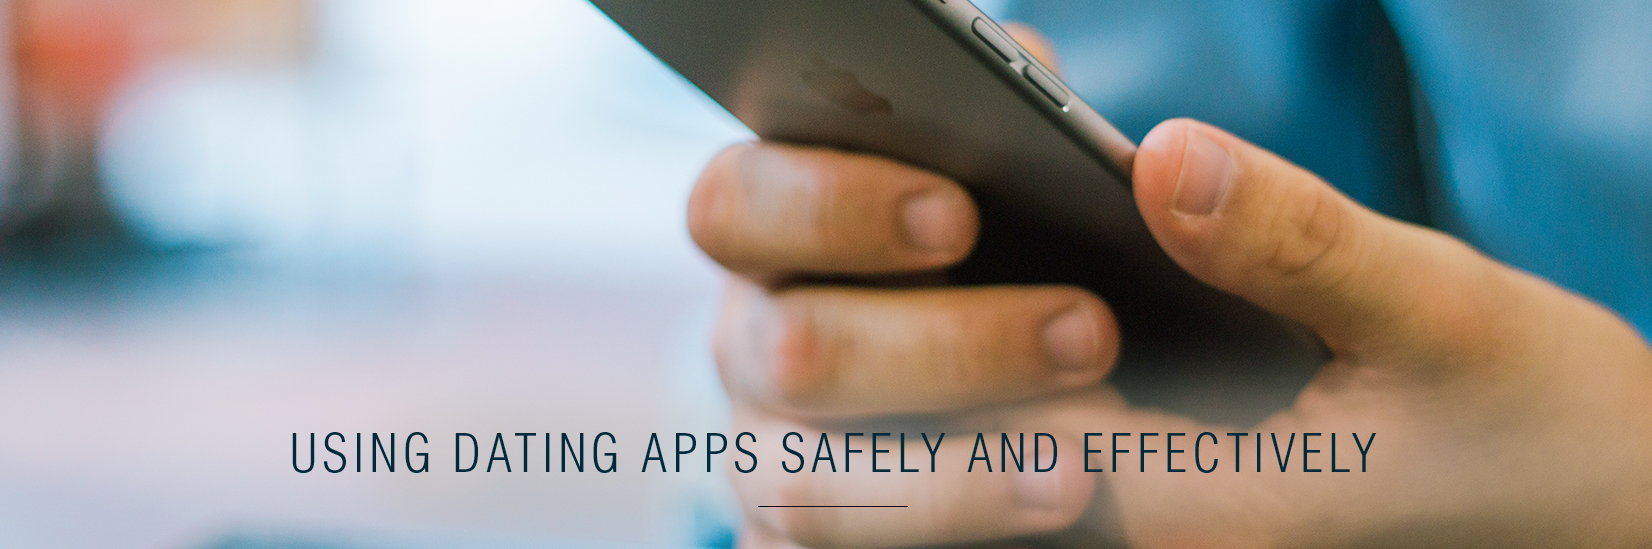 How to use dating apps safely